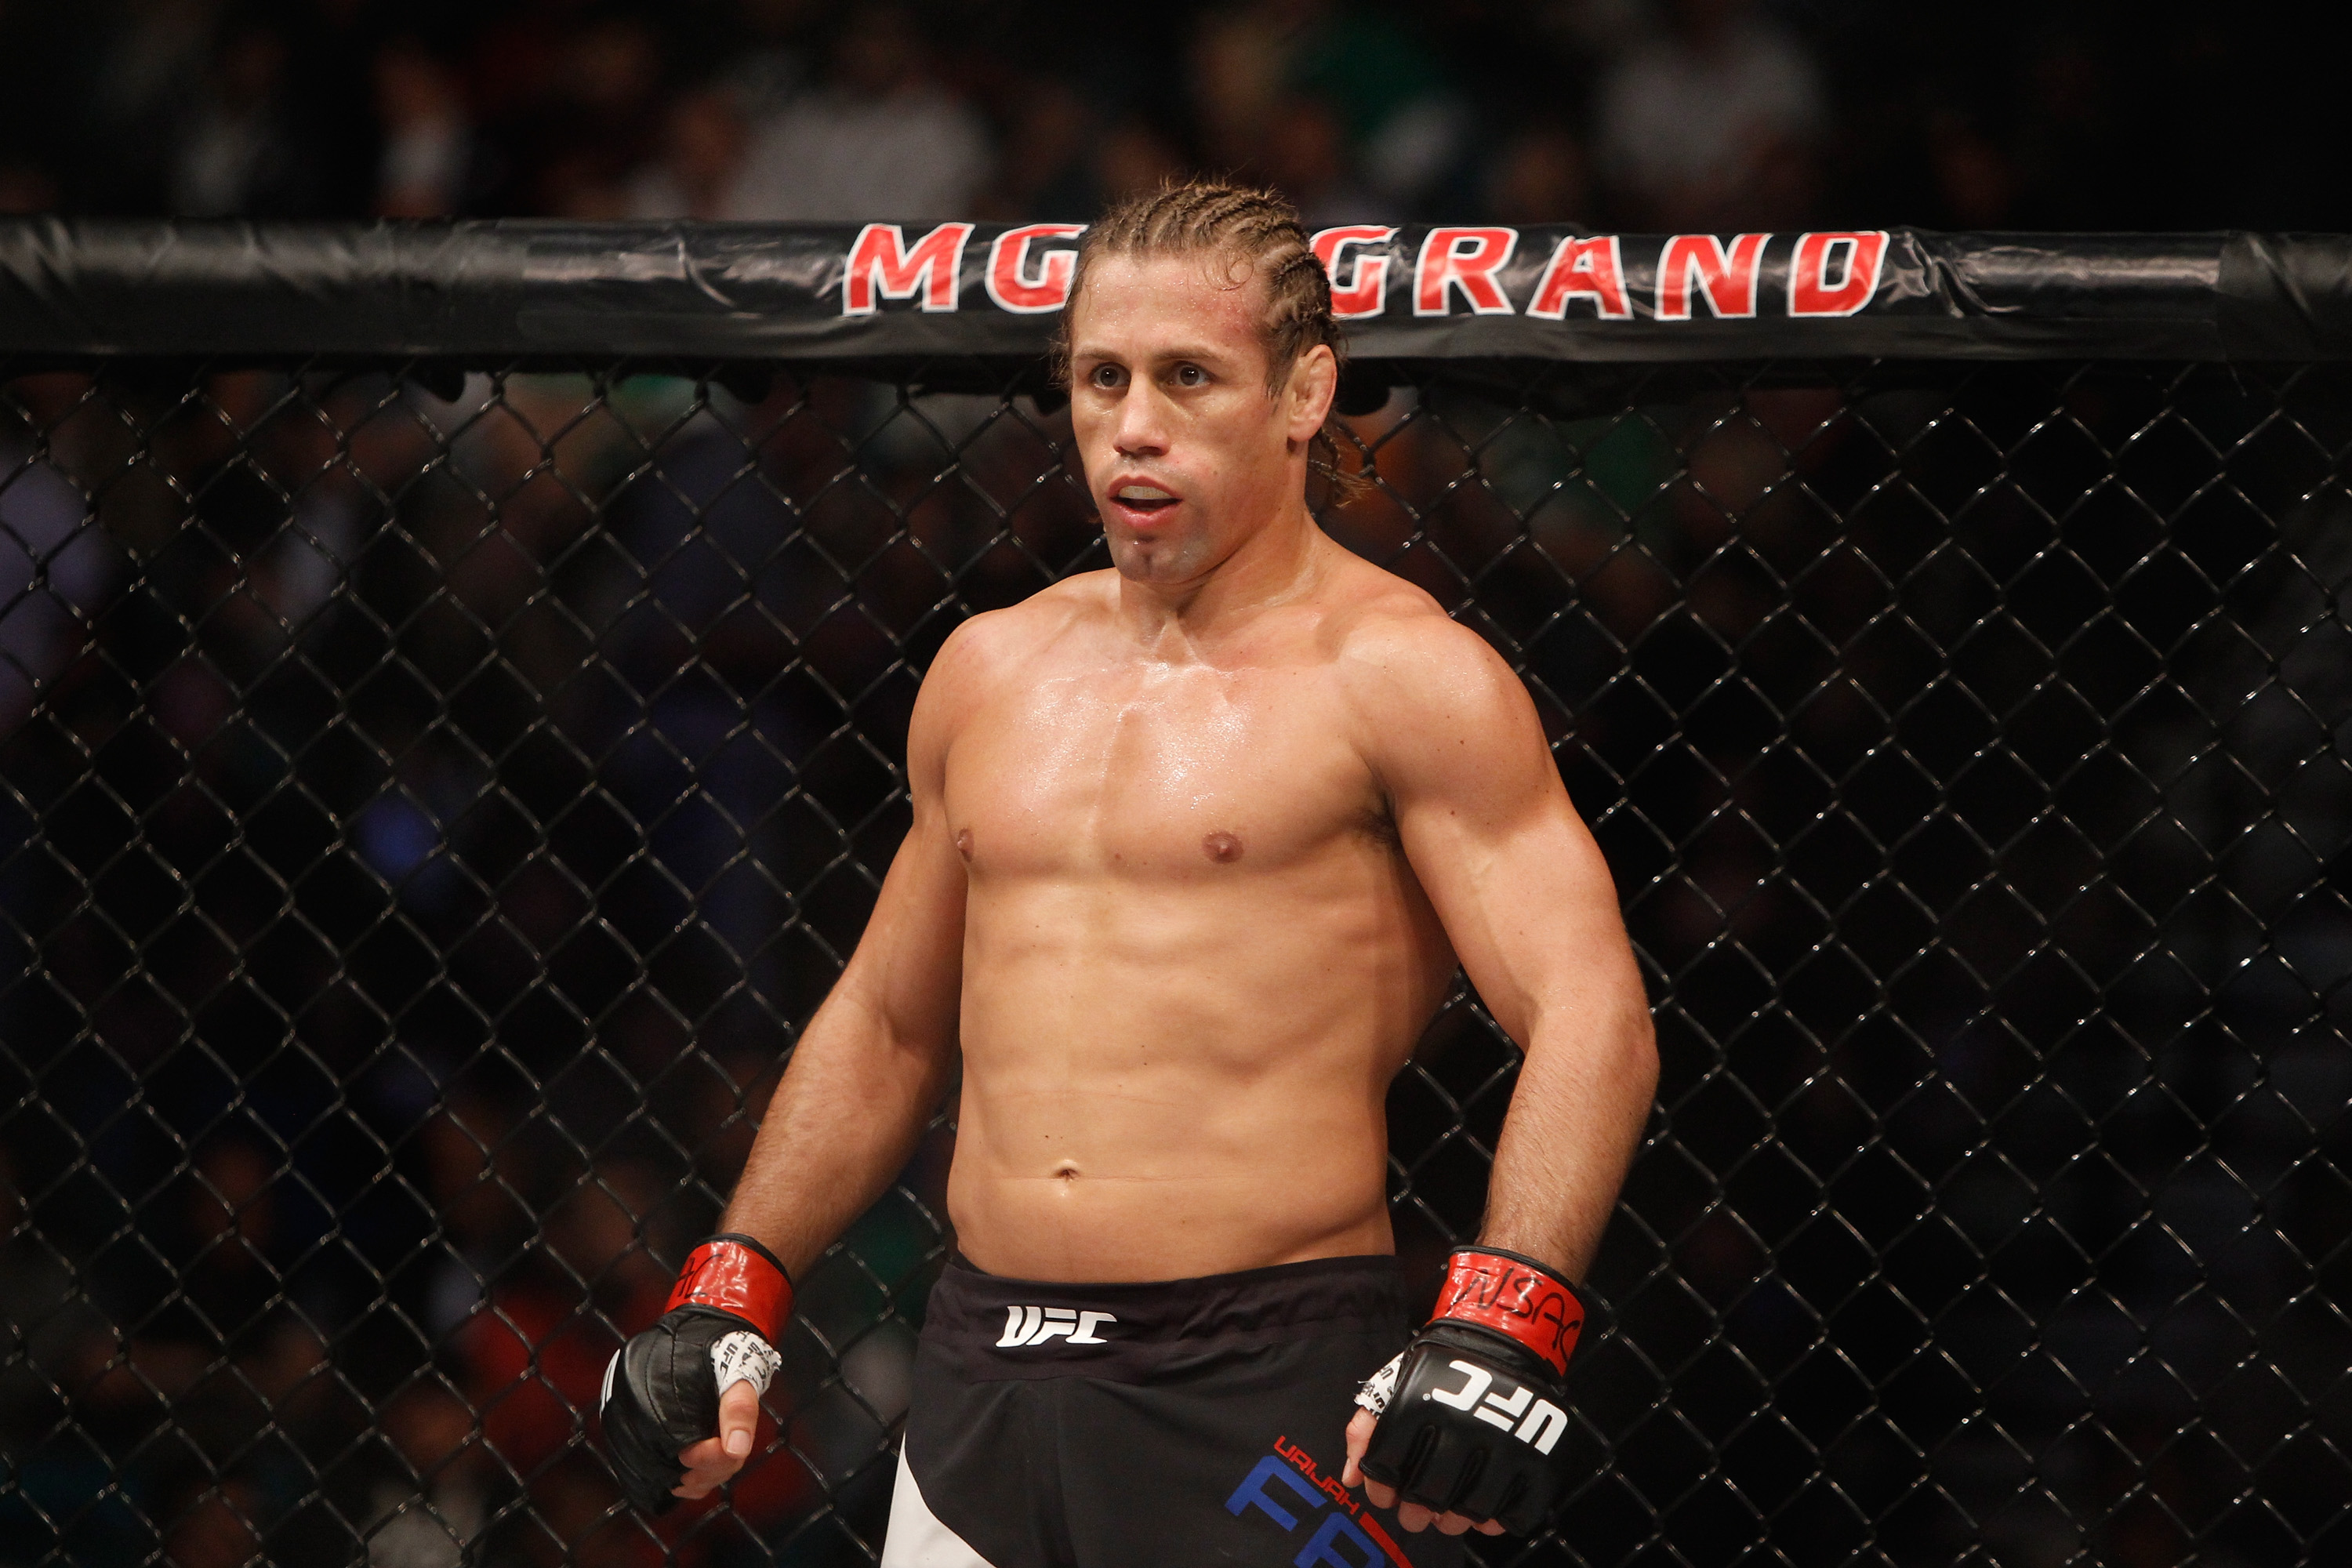 Urijah Faber on continuing to fight after Petr Yan loss: 'It's not yay or nay. It's maybe!' - Urijah